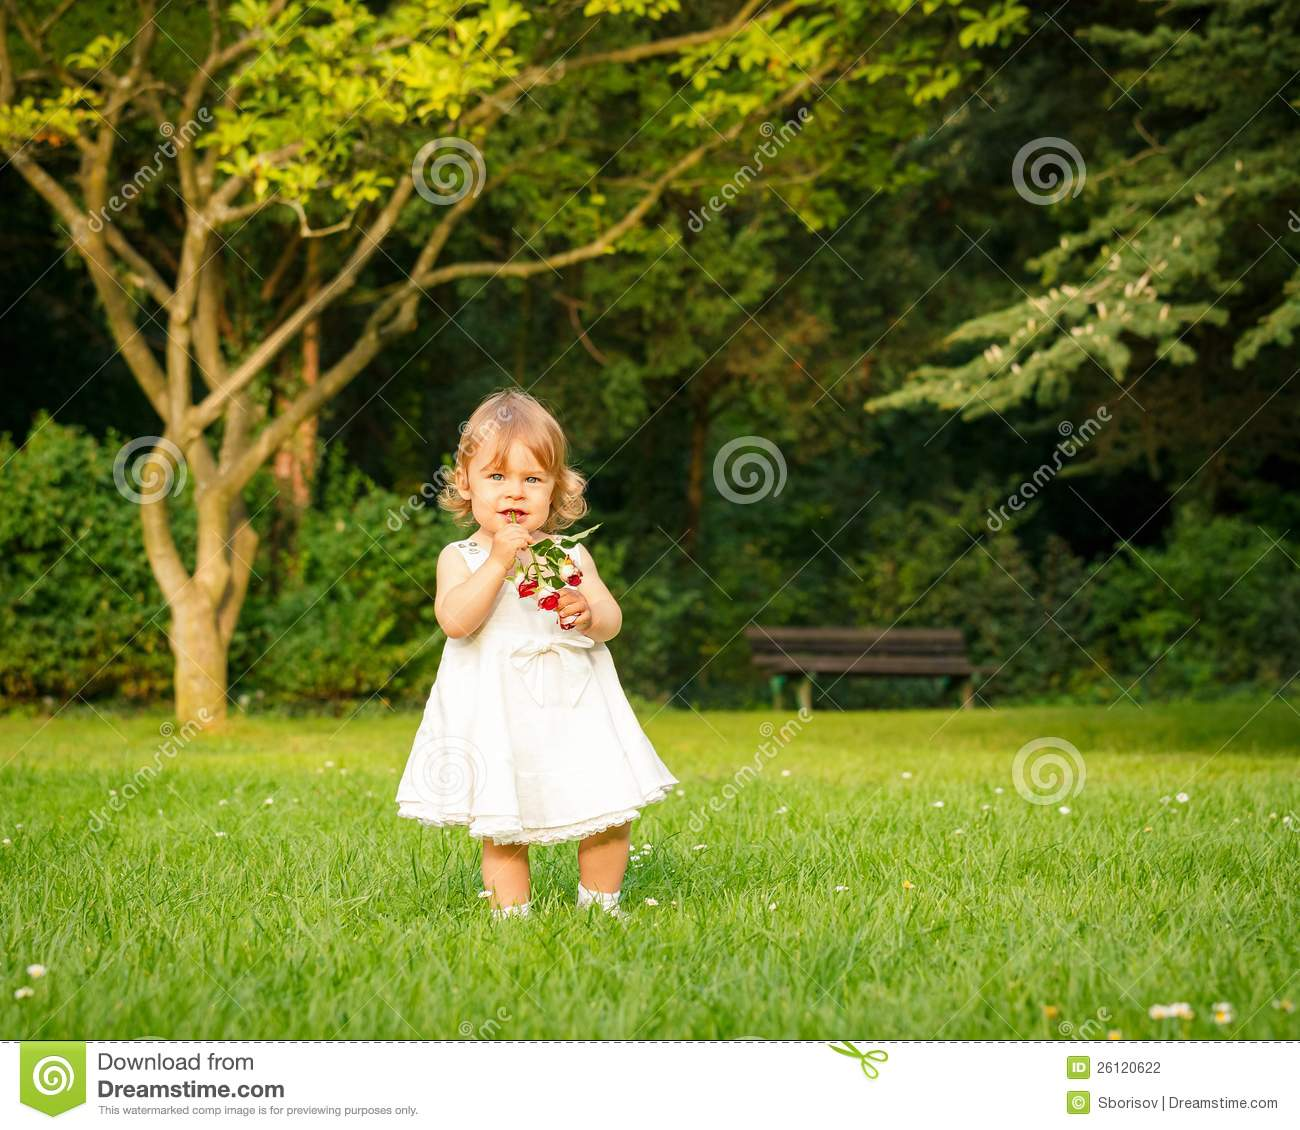 Little Girl In The Park Stock Photo. Image Of Small